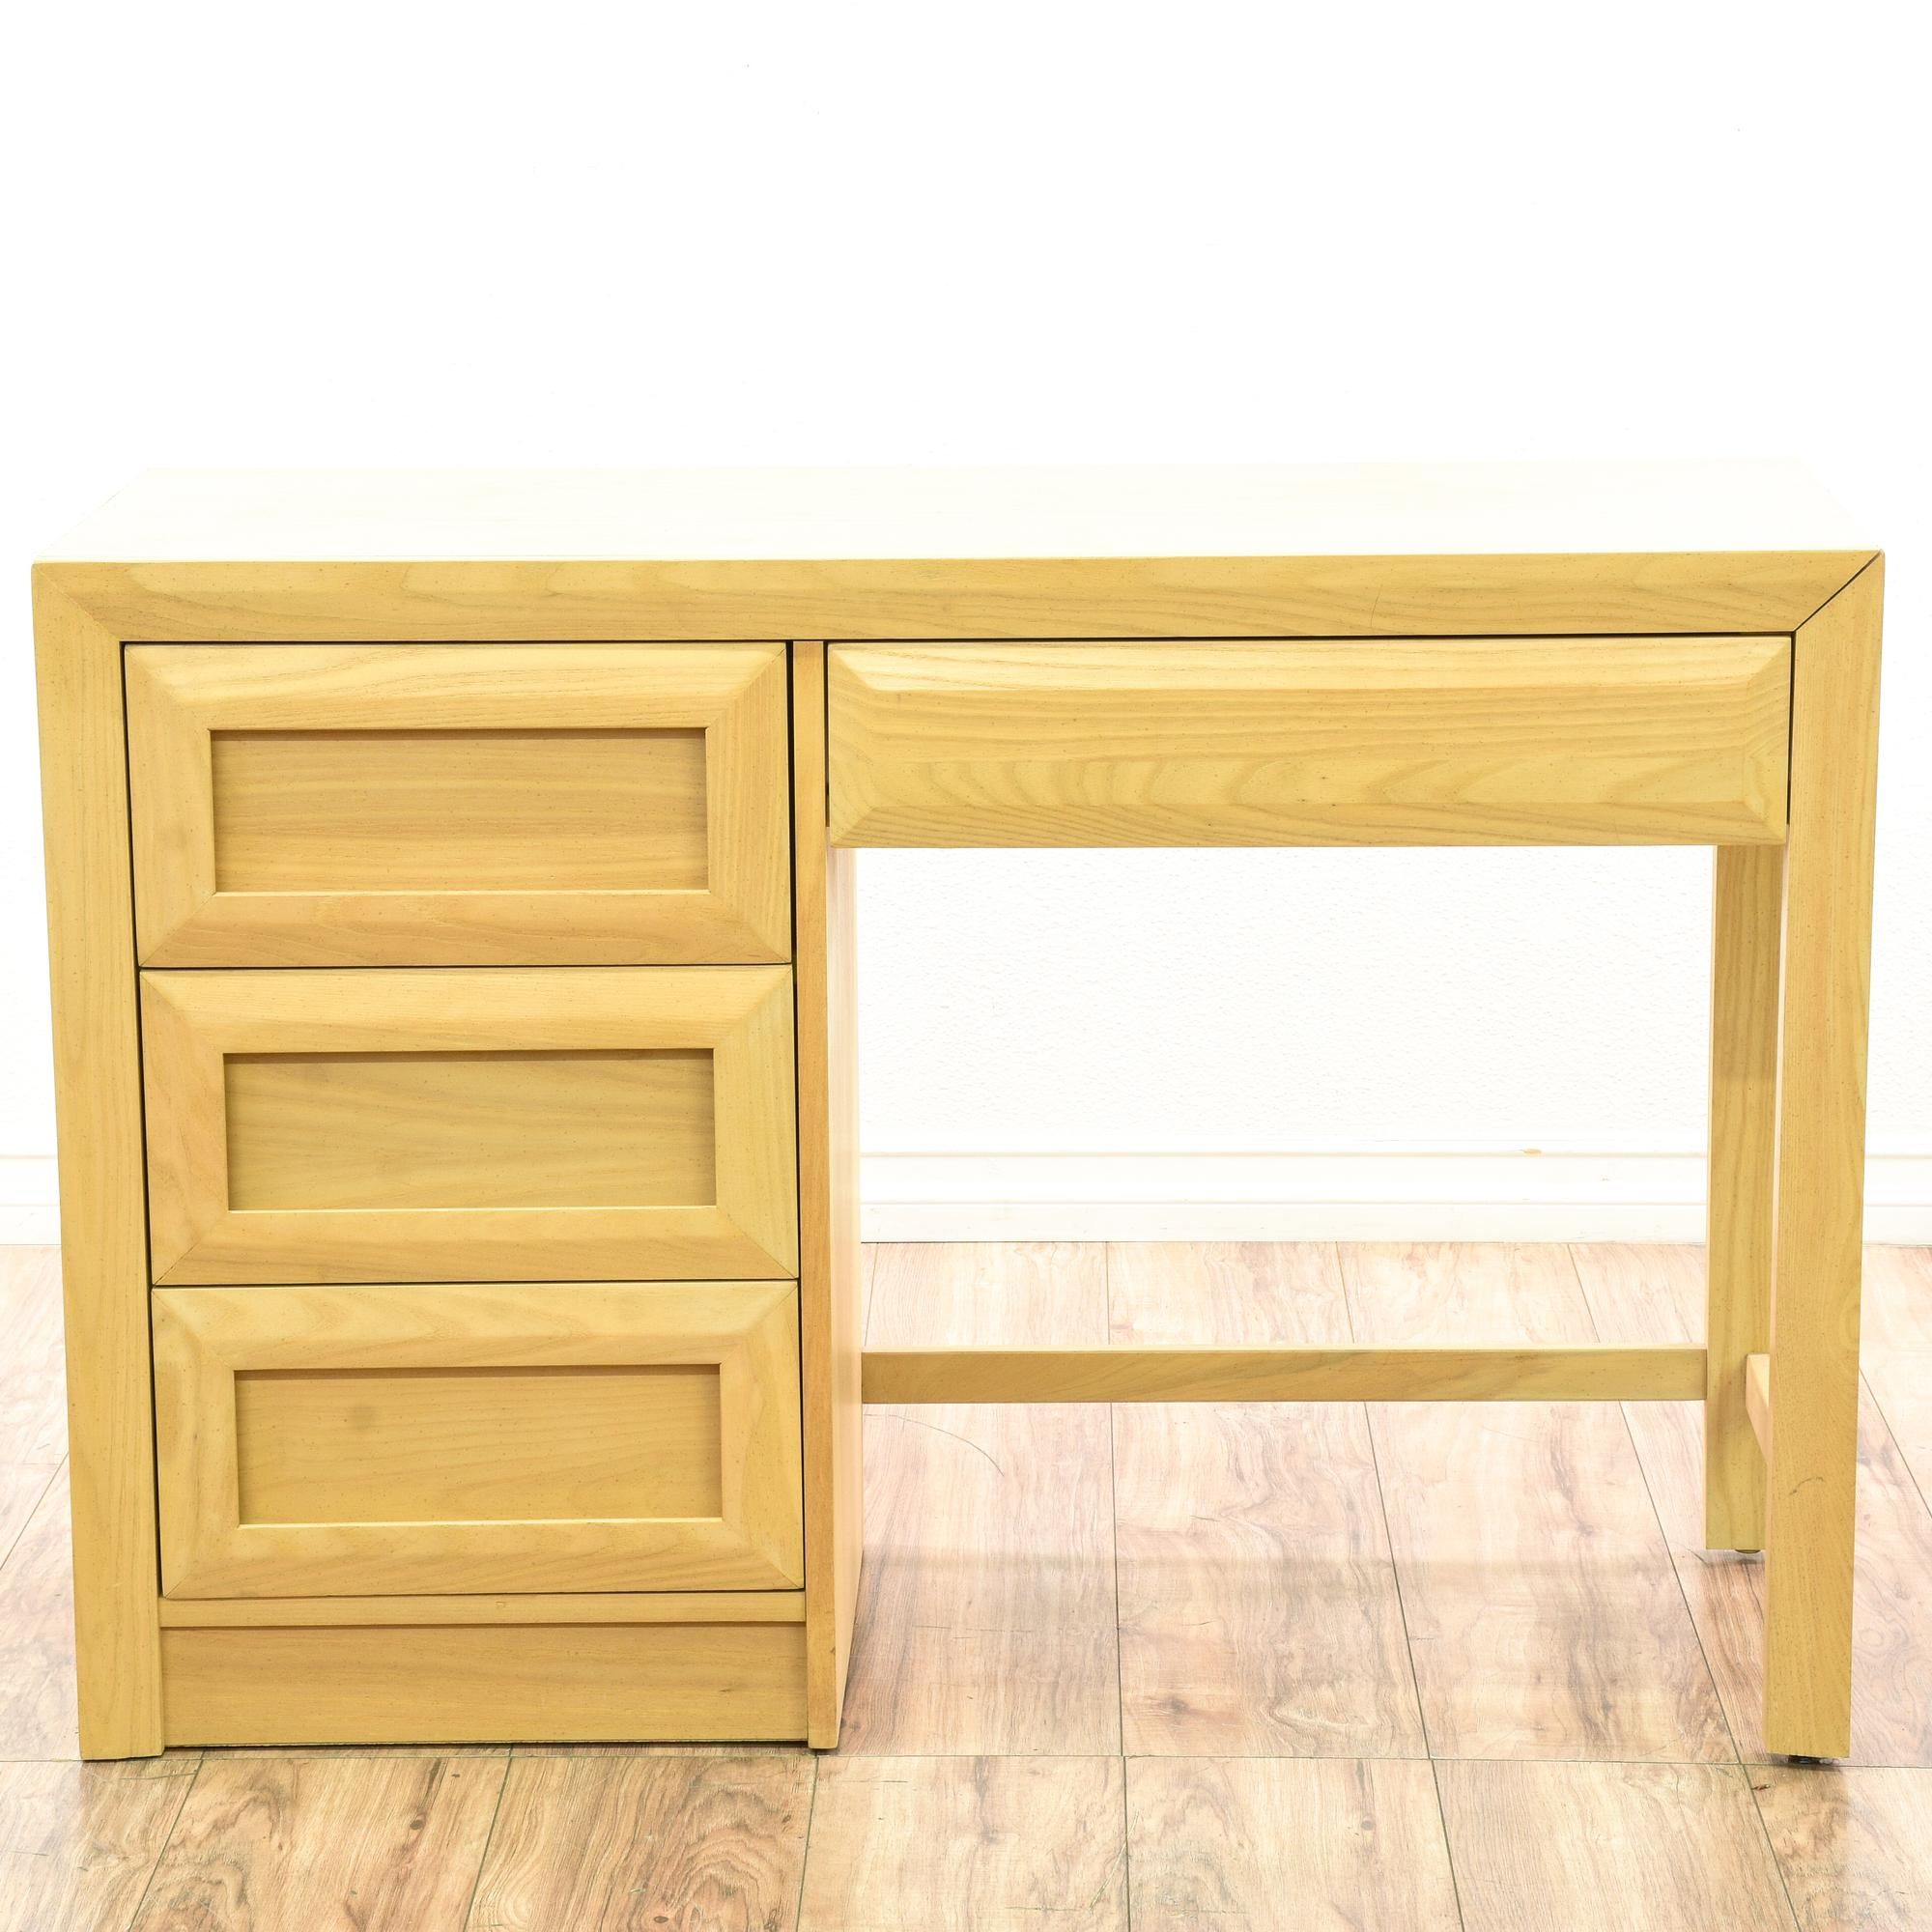 This Stanley Desk Is Featured In A Solid Wood With Gorgeous Light Blonde Finish Contemporary Writing Has 4 Drawers Carved Trim And